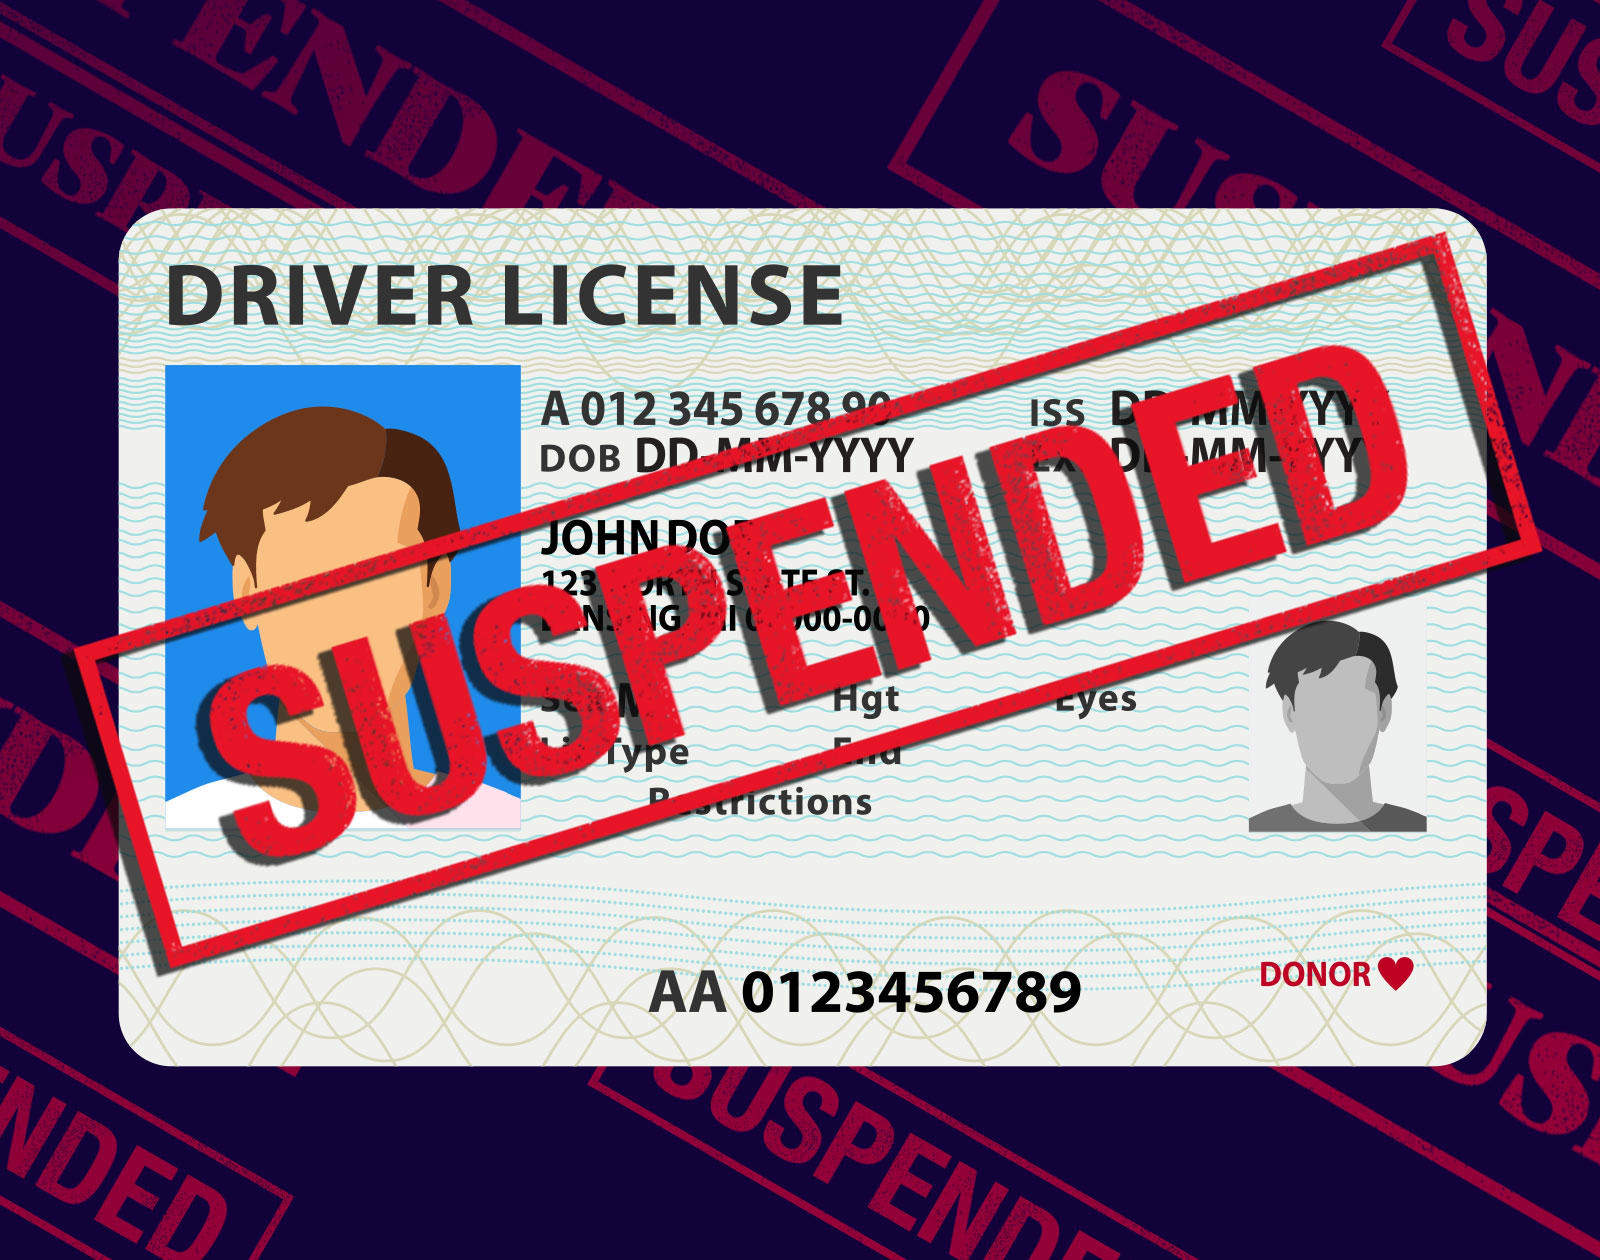 penalties for driving with suspended license